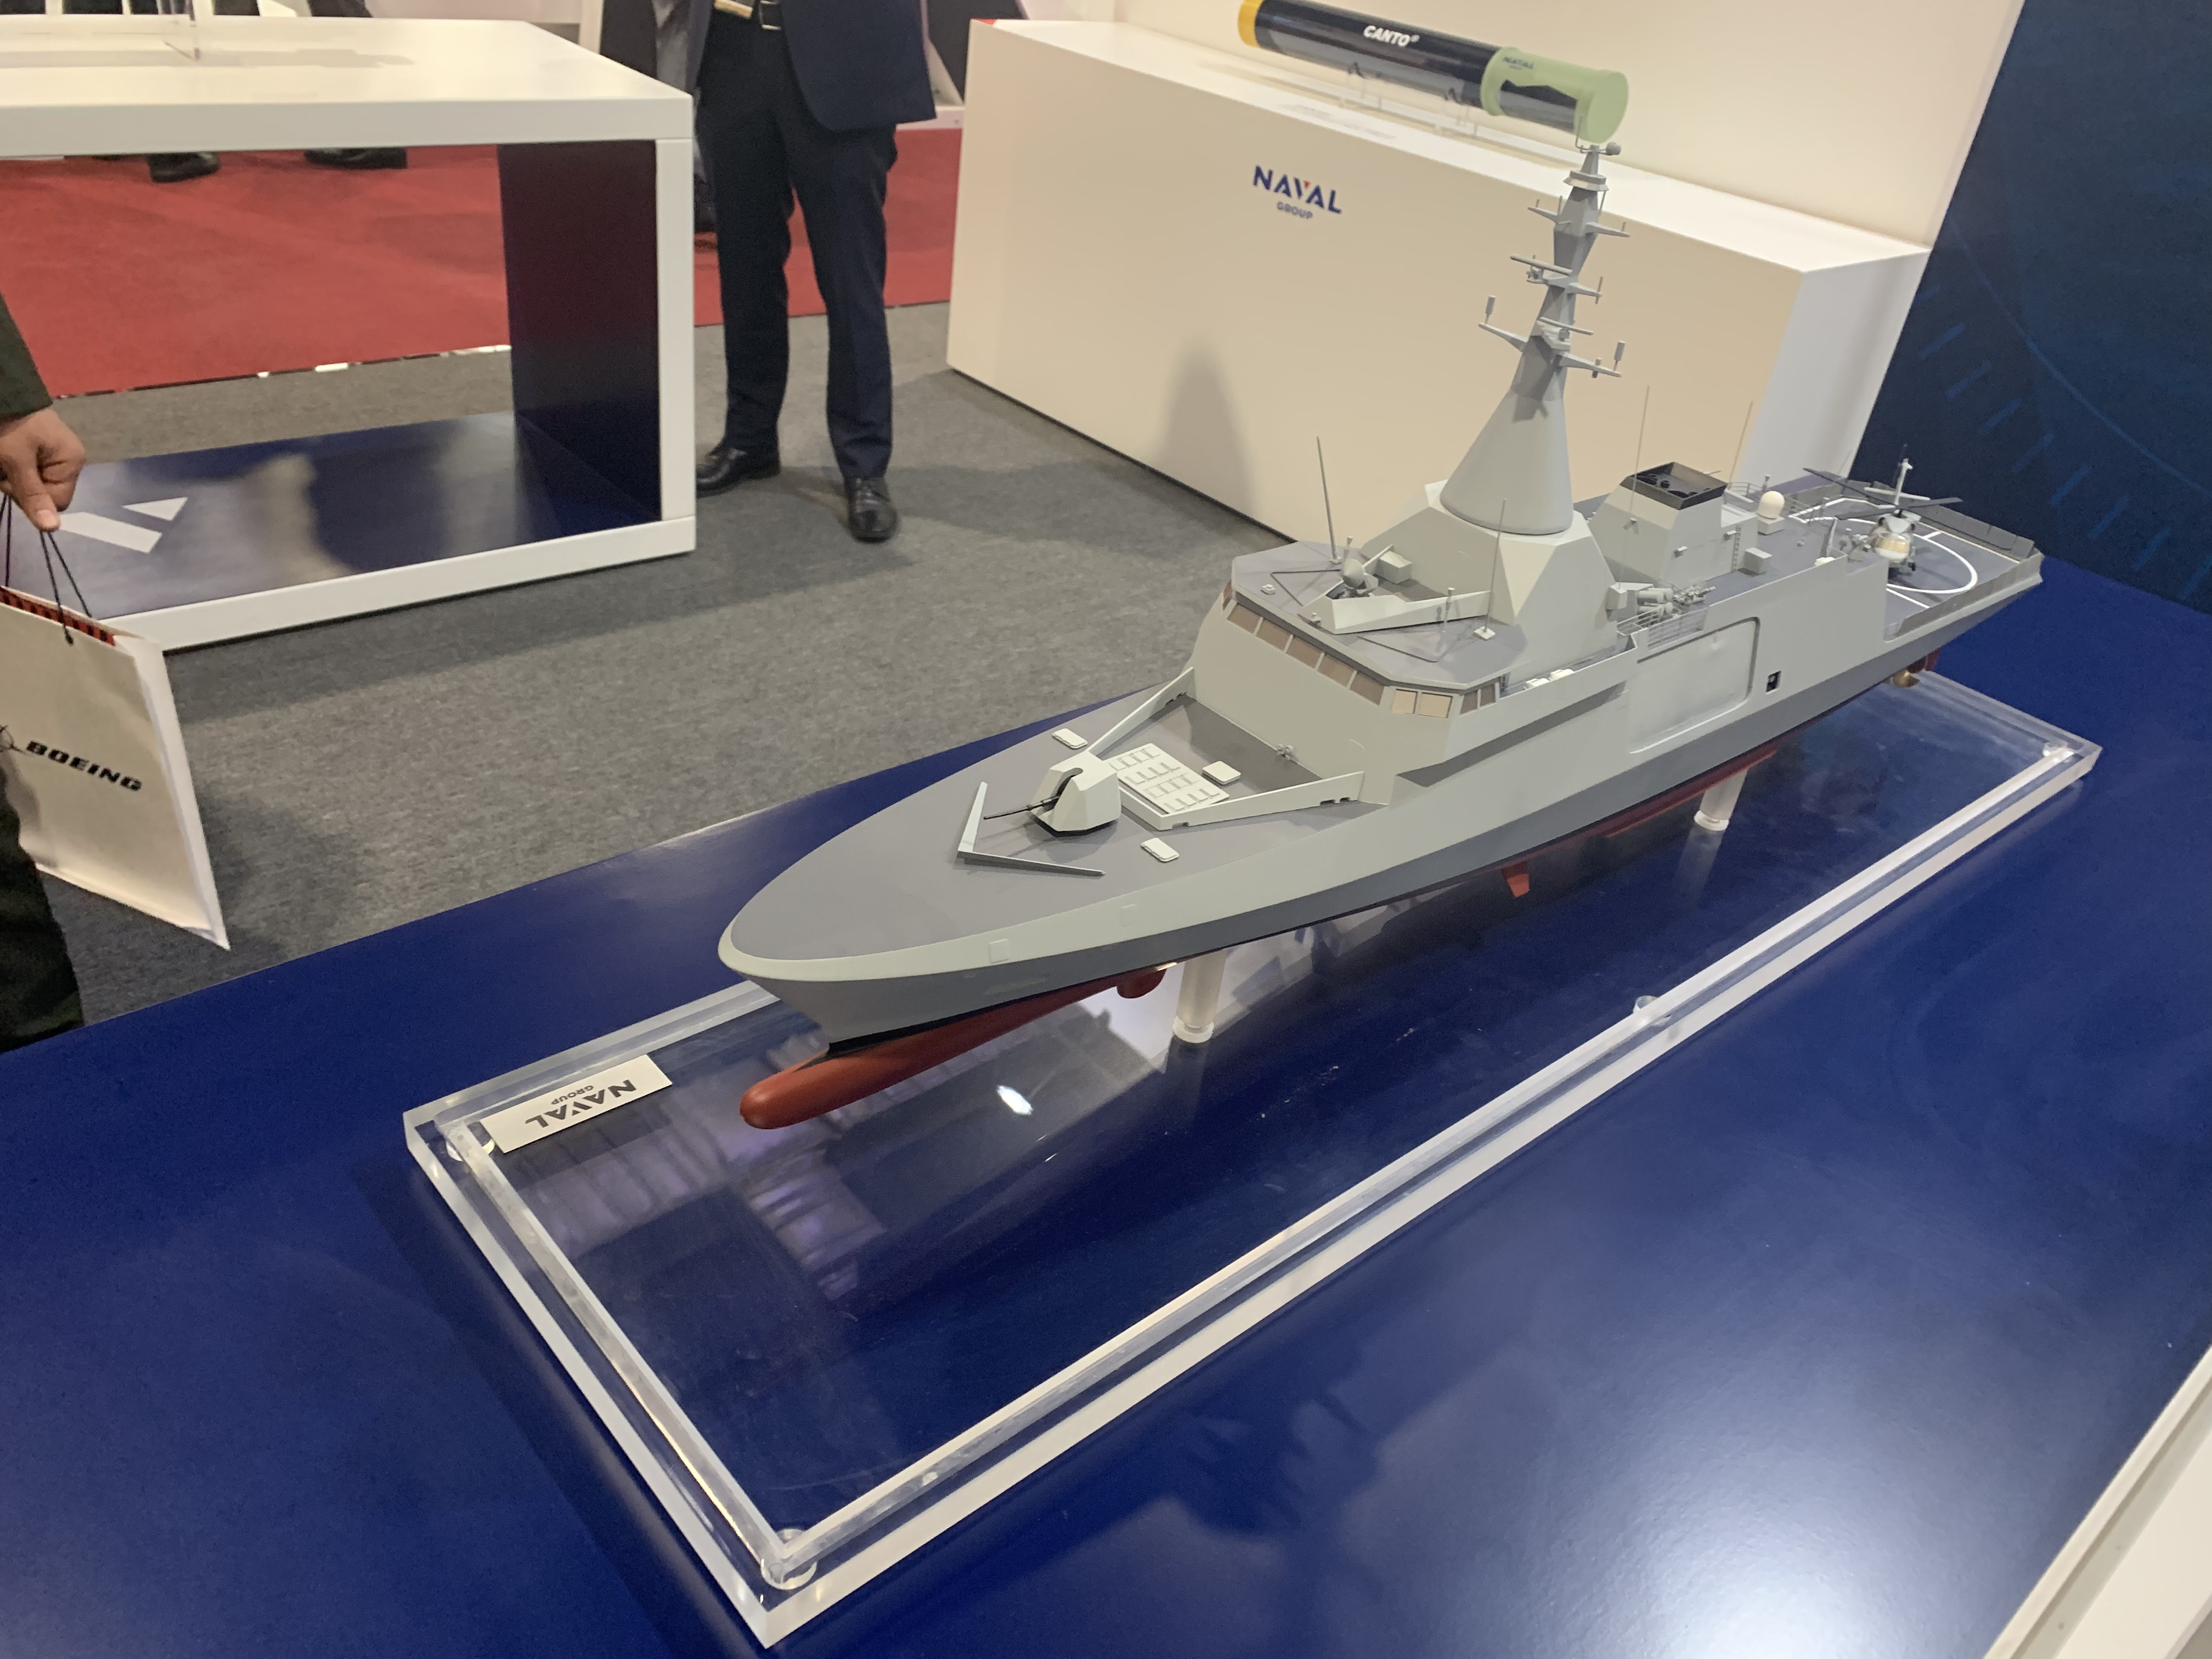 French firm Naval Group presented its goods at the first ever Defense and Security Exhibition in Egypt. (Chirine Mouchantaf/Staff)